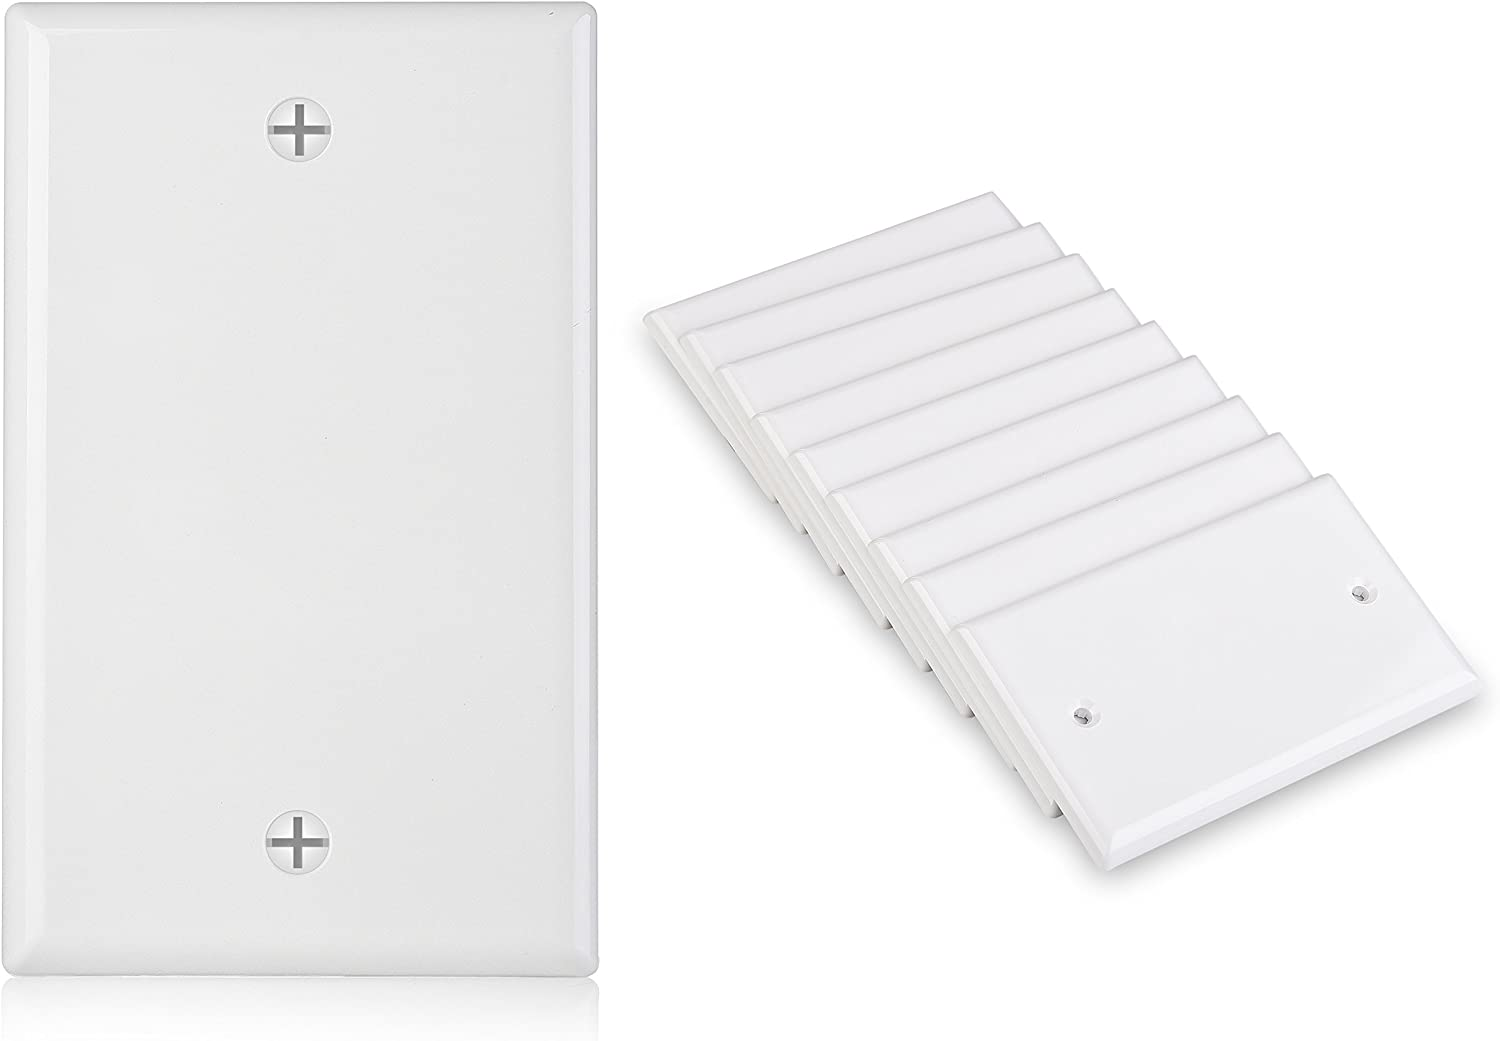 Cable Matters UL Listed 10-Pack Single-Gang Blank Wall Plate Cover in White